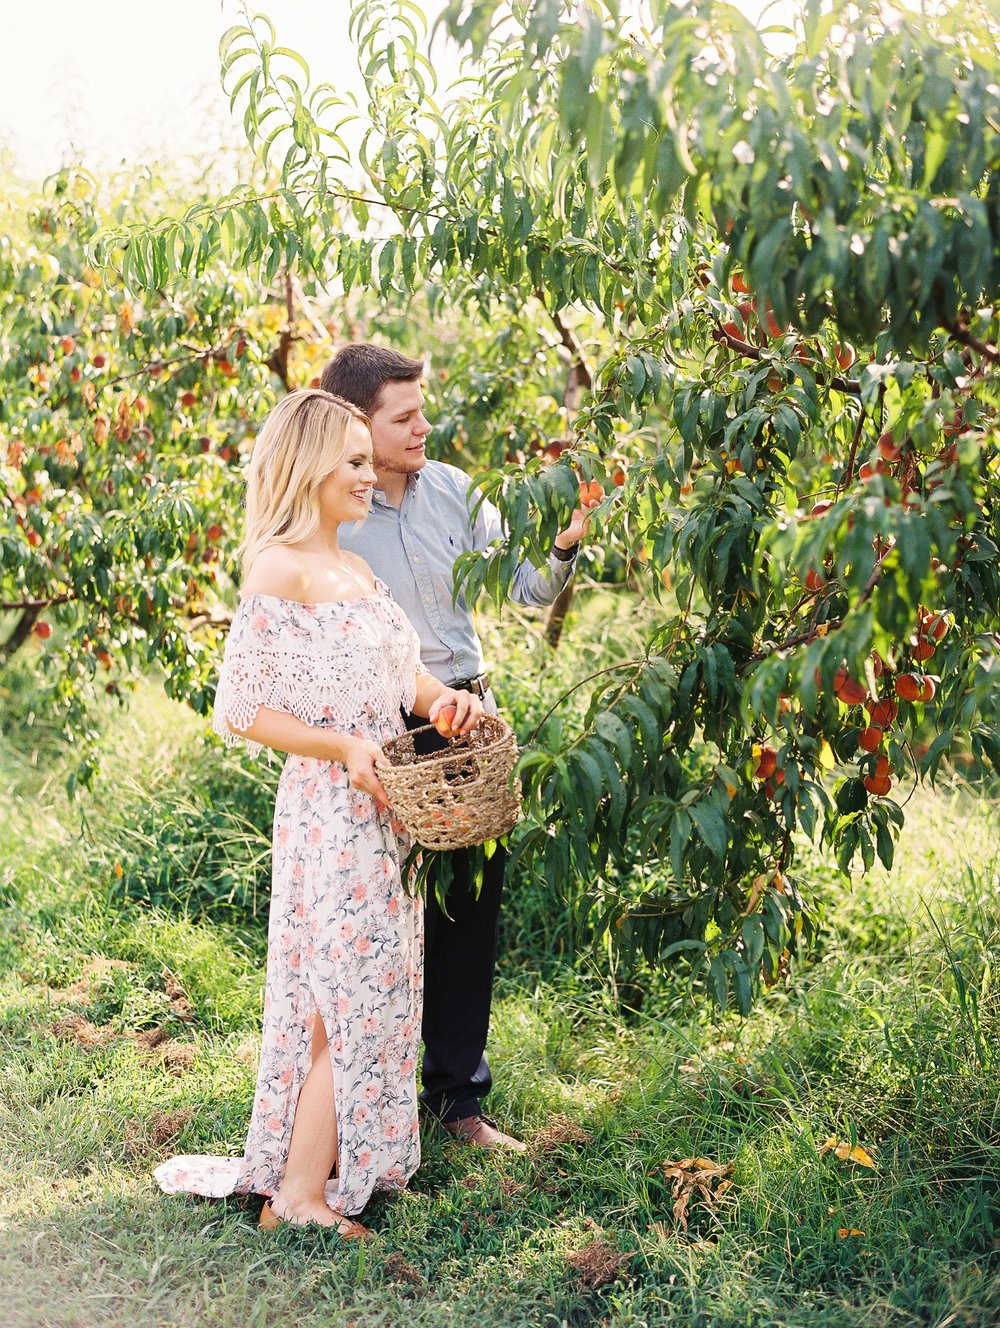 Peach-Orchard-Engagement-Session-Arkansas_0017.jpg